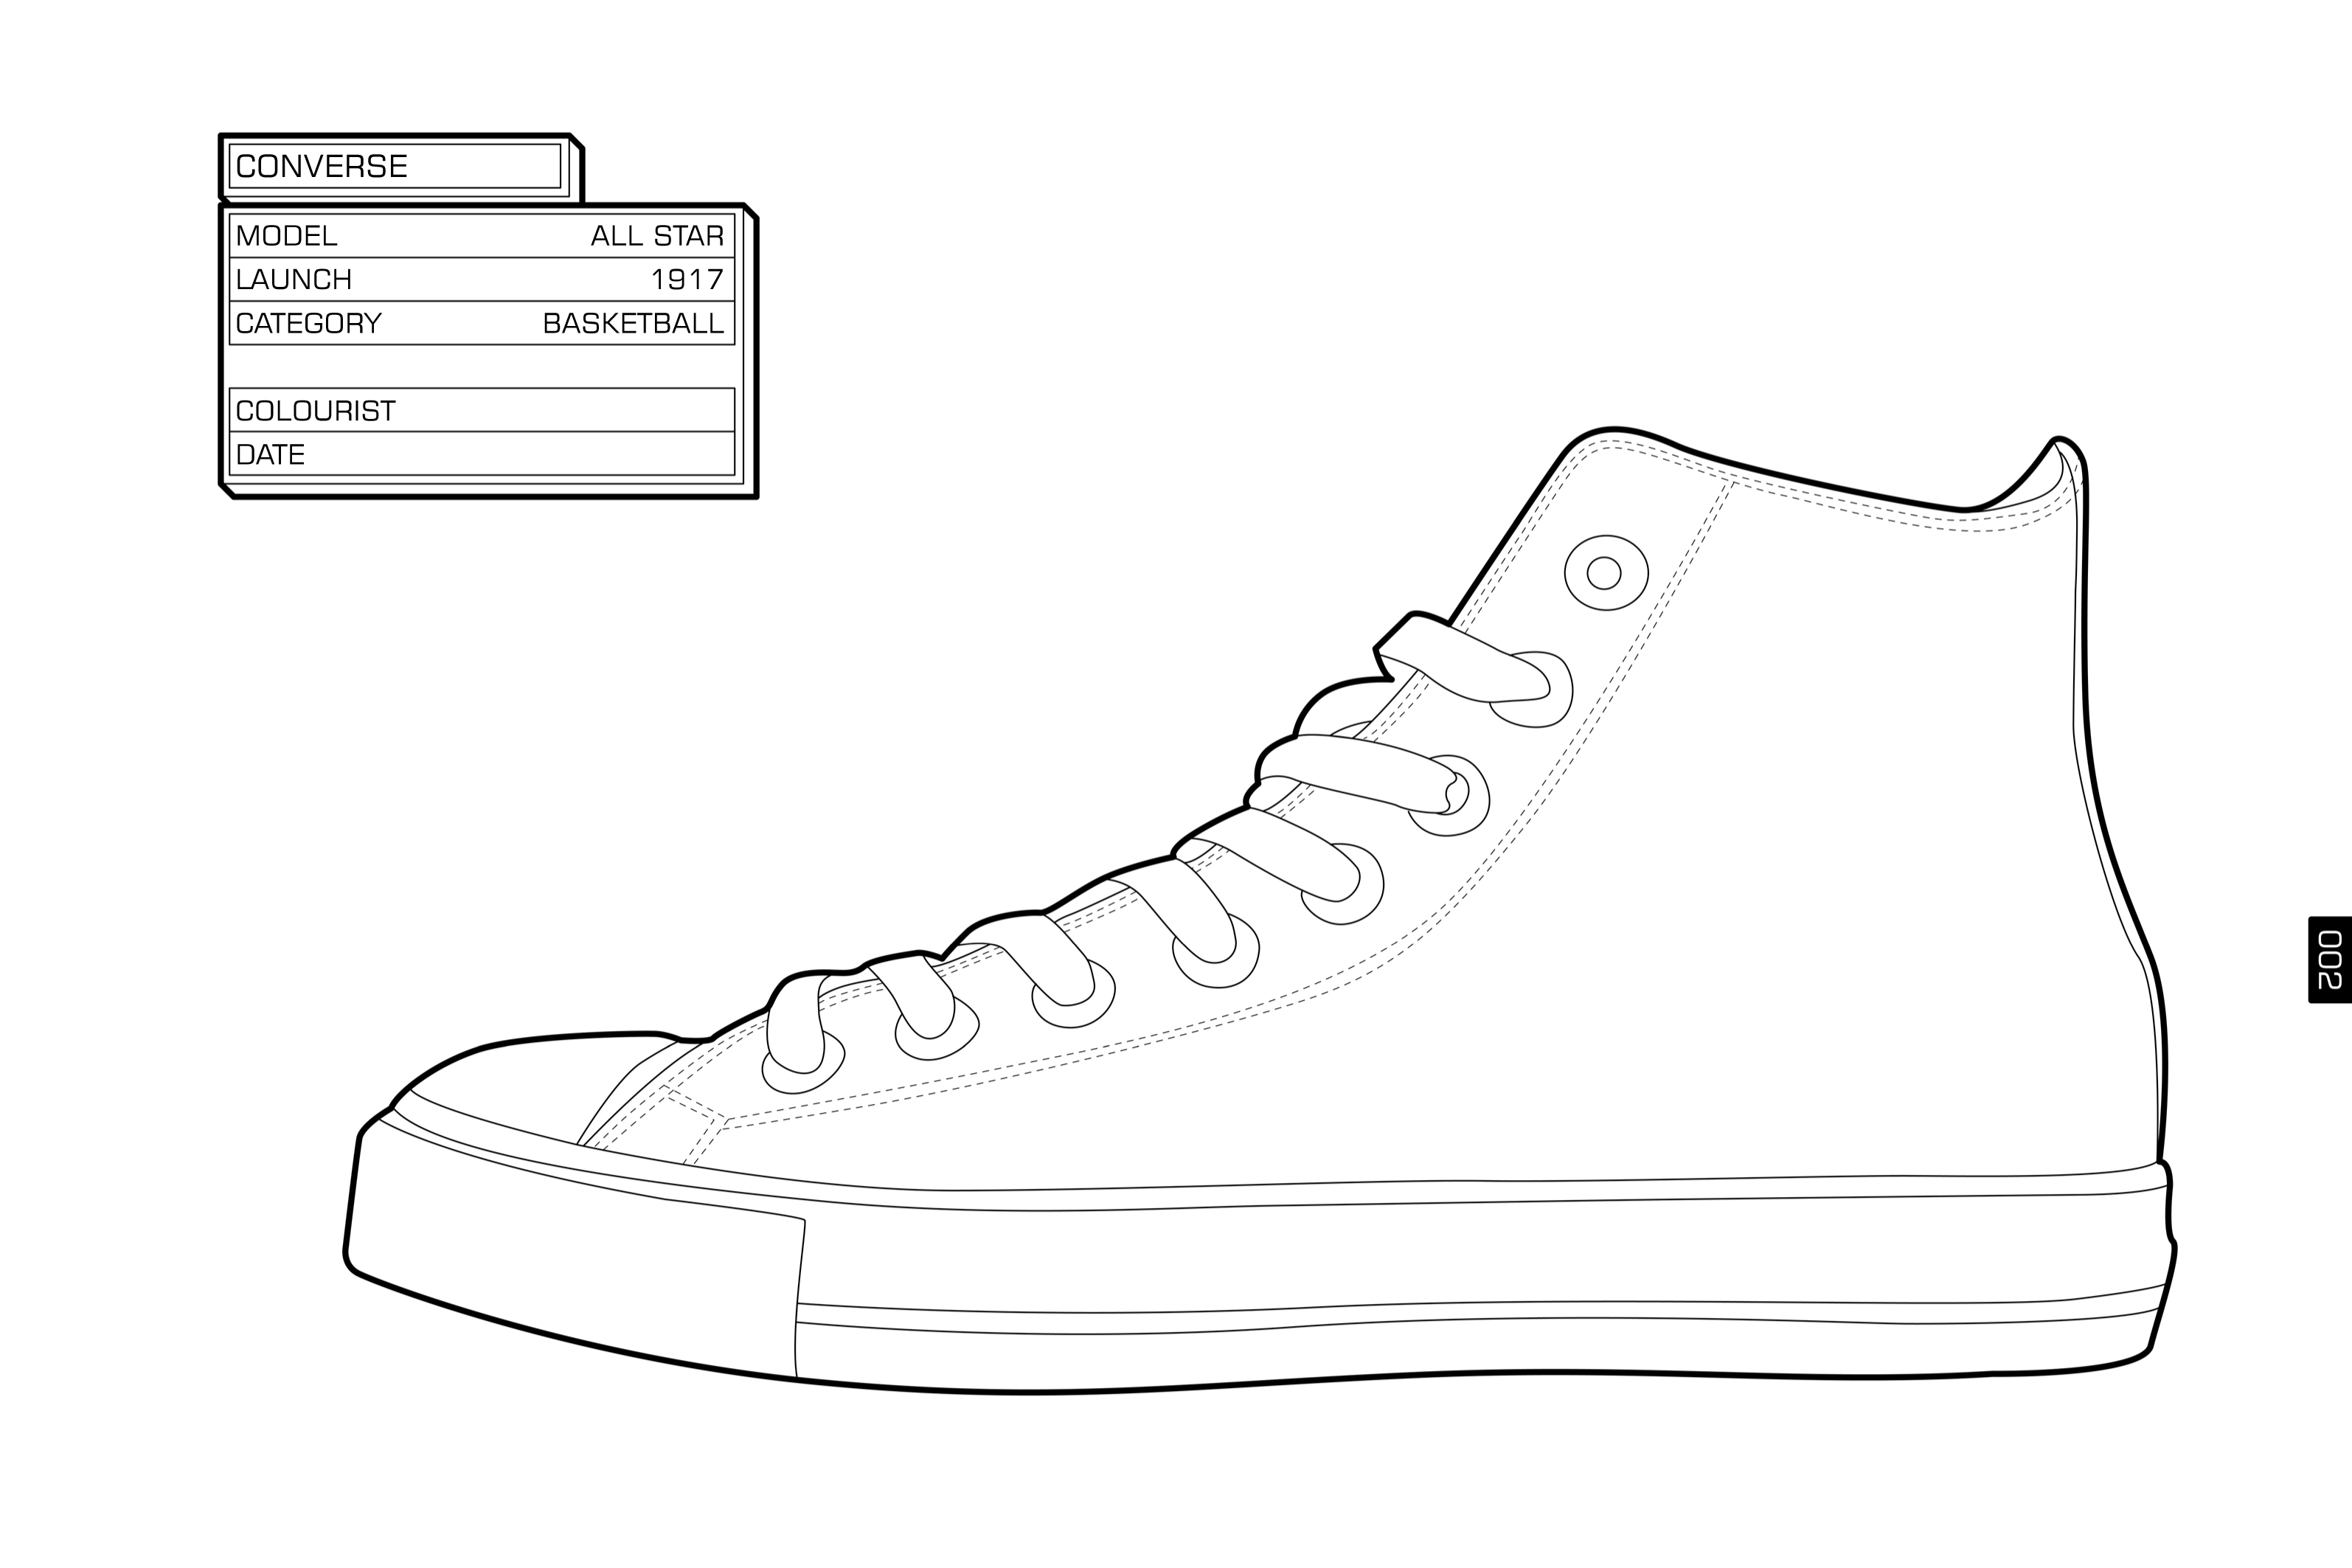 Gallery images and information: Converse Shoes Clip Art